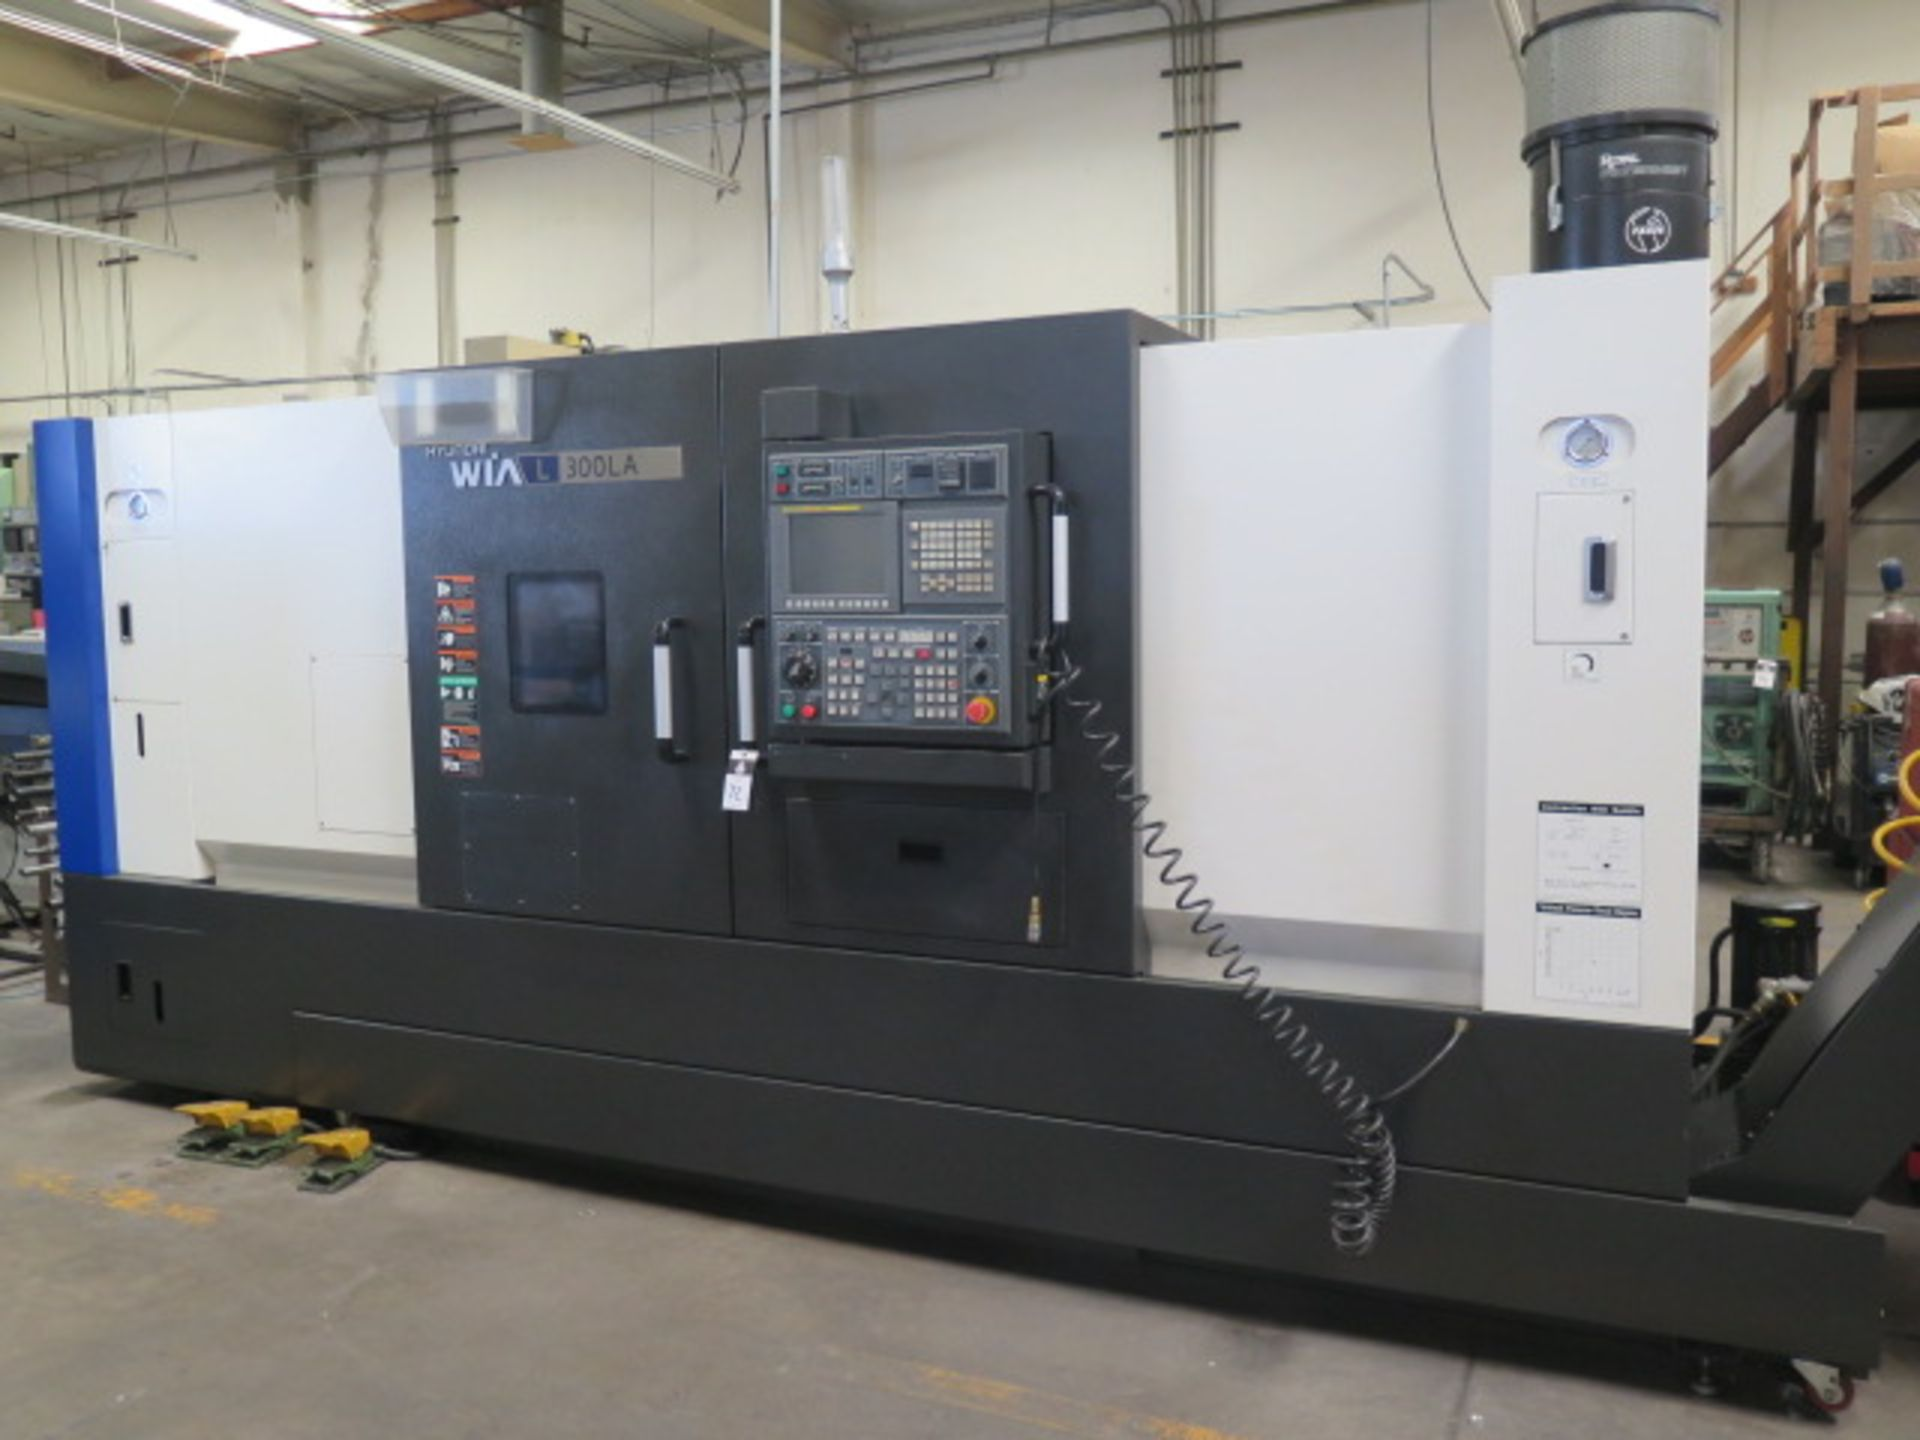 2016 Hyundai WIA L300LA CNC Turning Center s/n G3726-0083 w/ Fanuc i-Series Controls, SOLD AS IS - Image 2 of 20